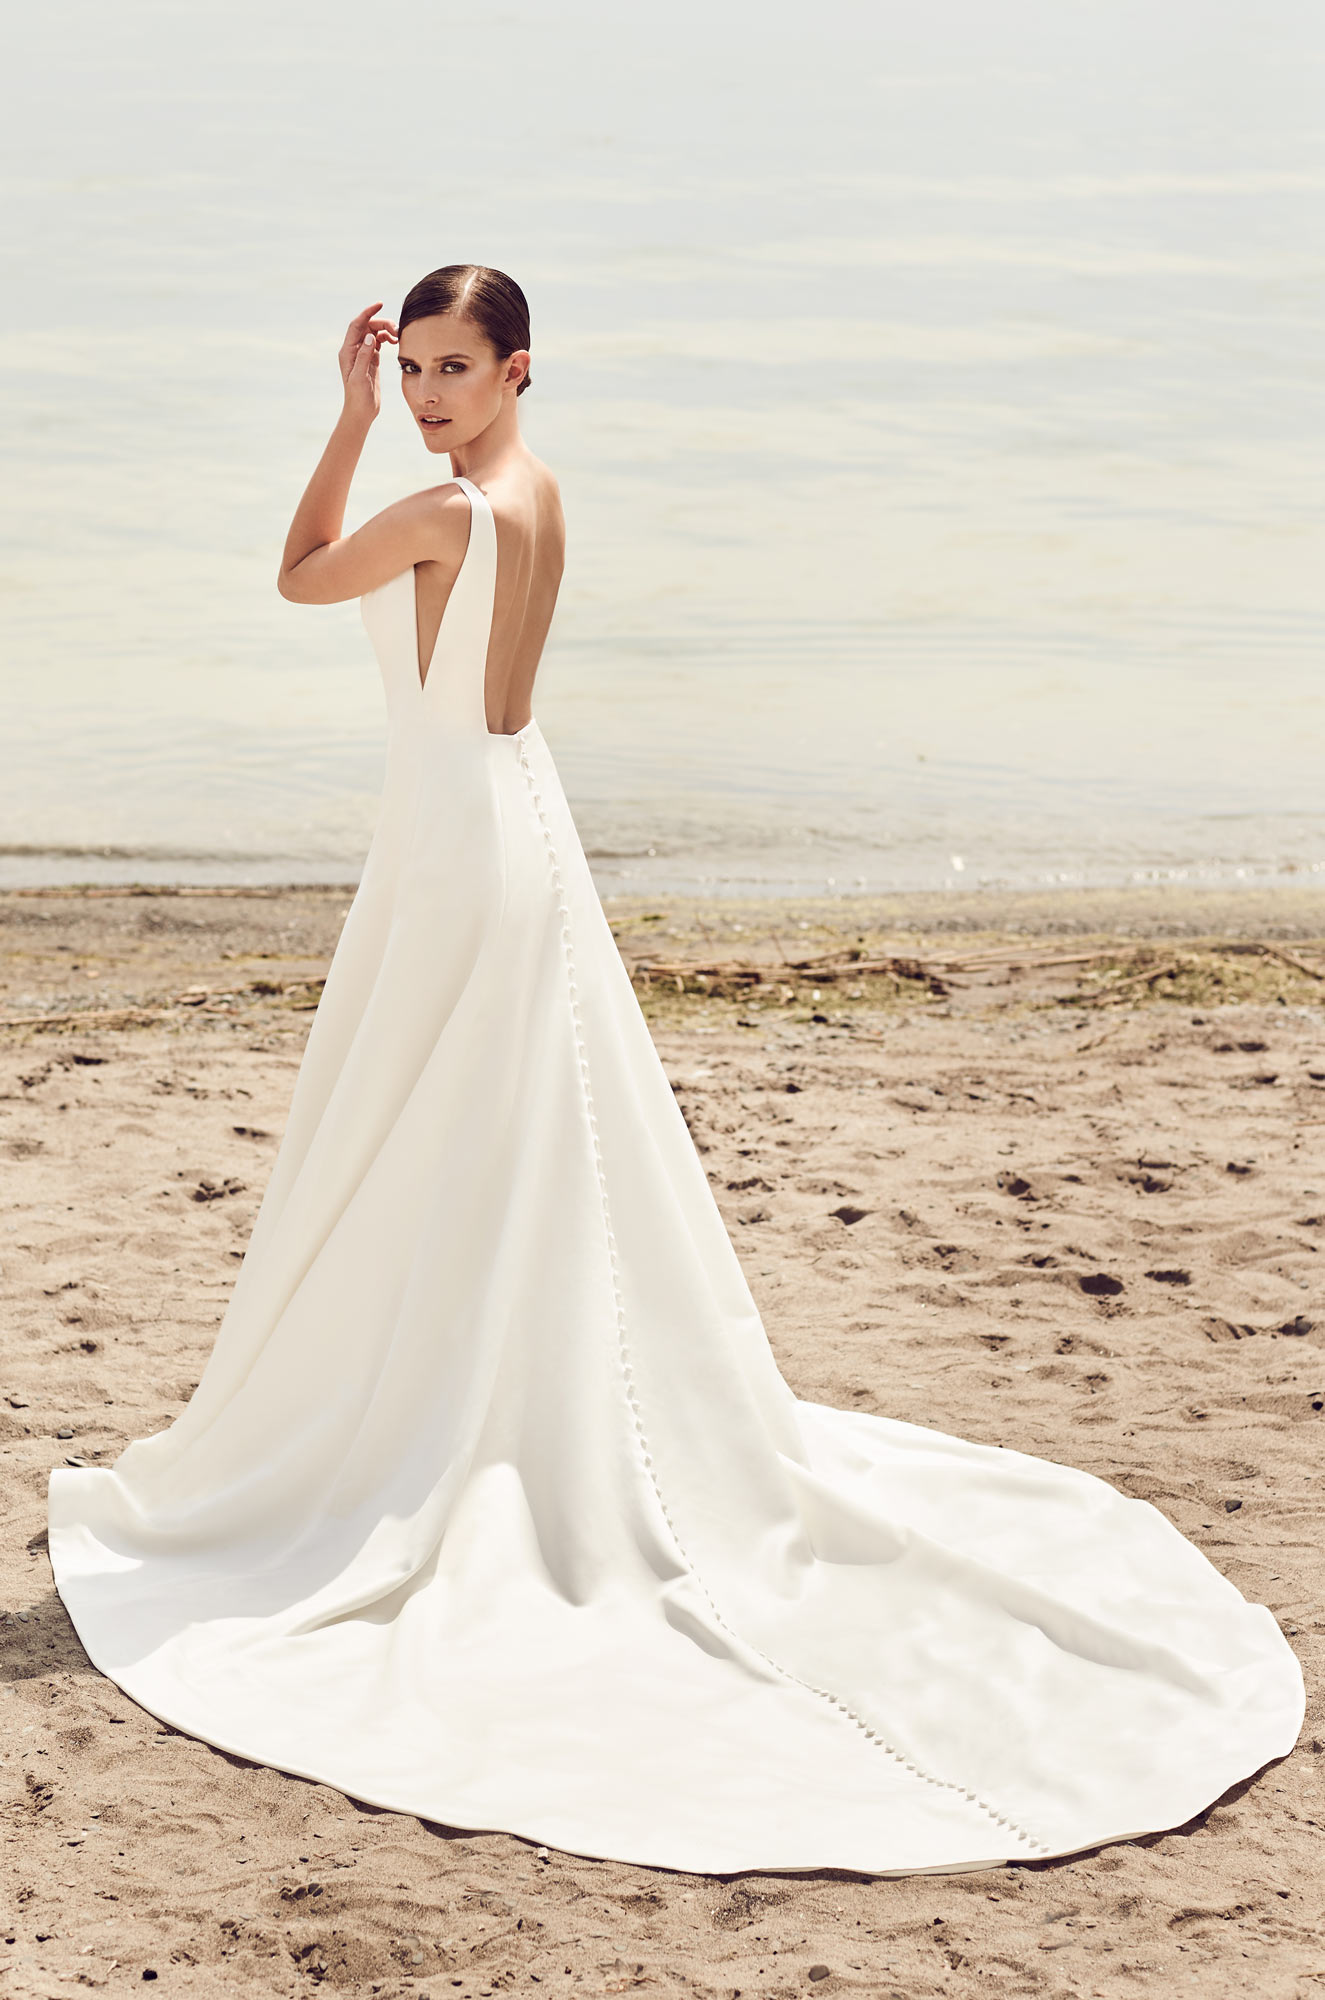 Sleek Modern Wedding Dress  Style #2115  Mikaella Bridal